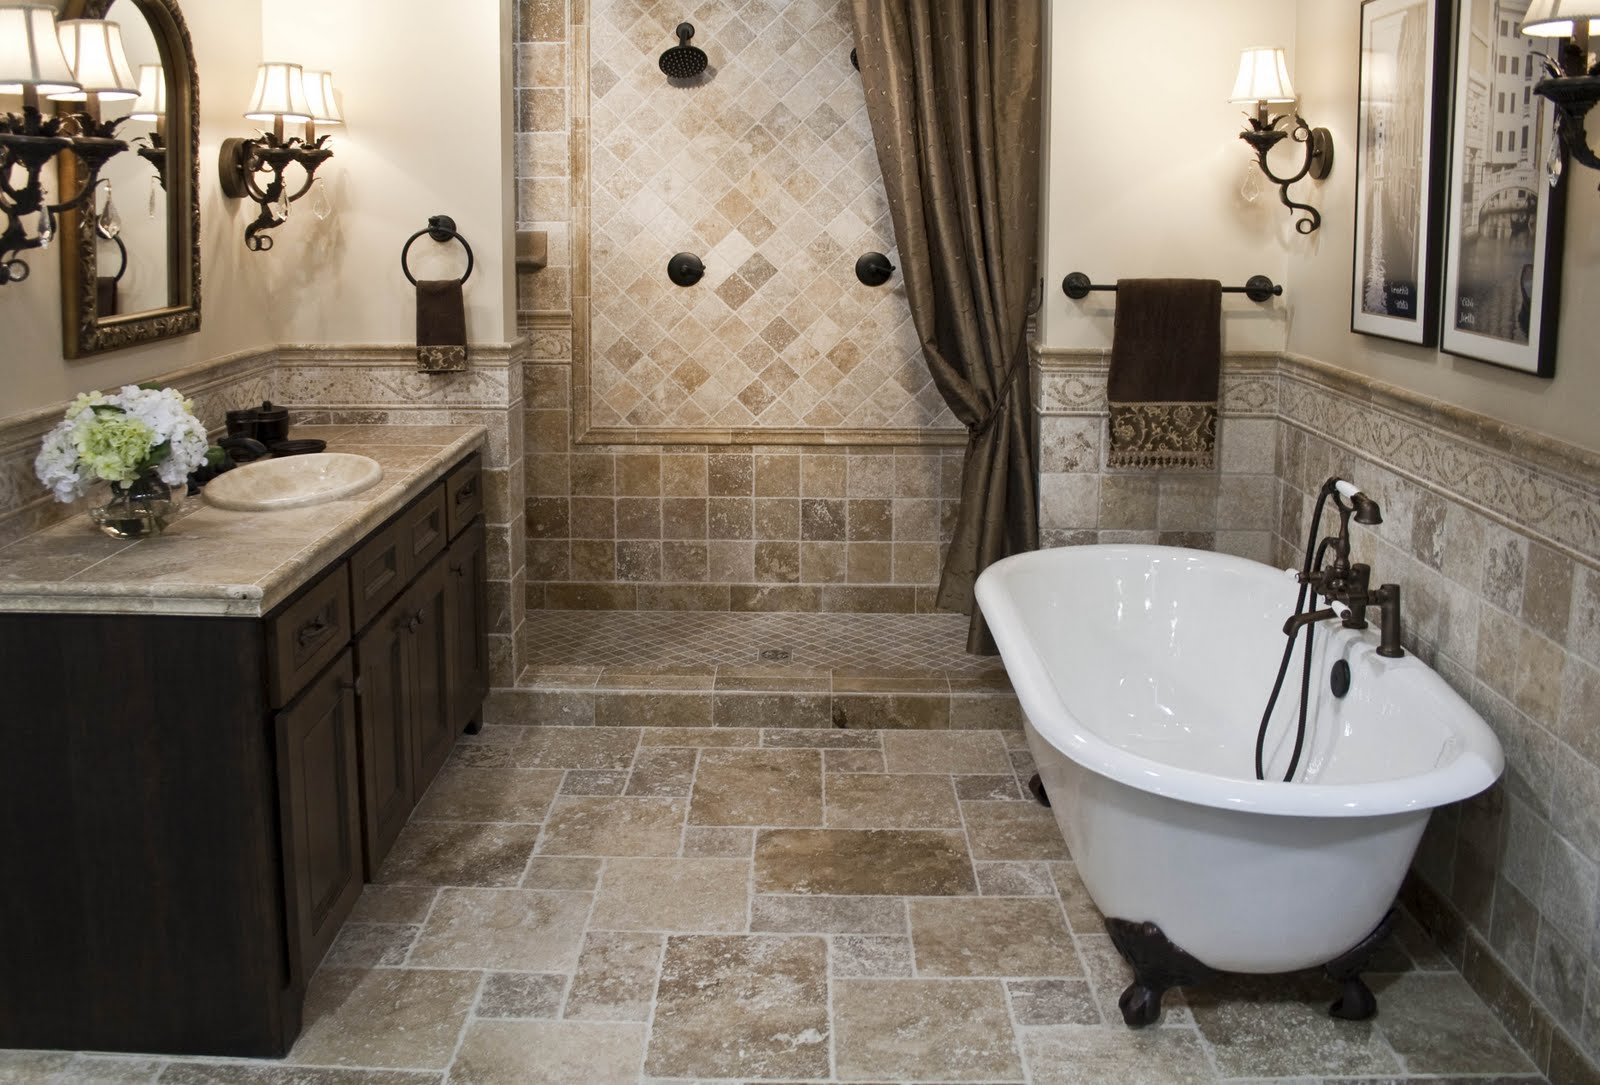 Small Bath Ideas Of The Top 20 Small Bathroom Design Ideas For 2014 Qnud